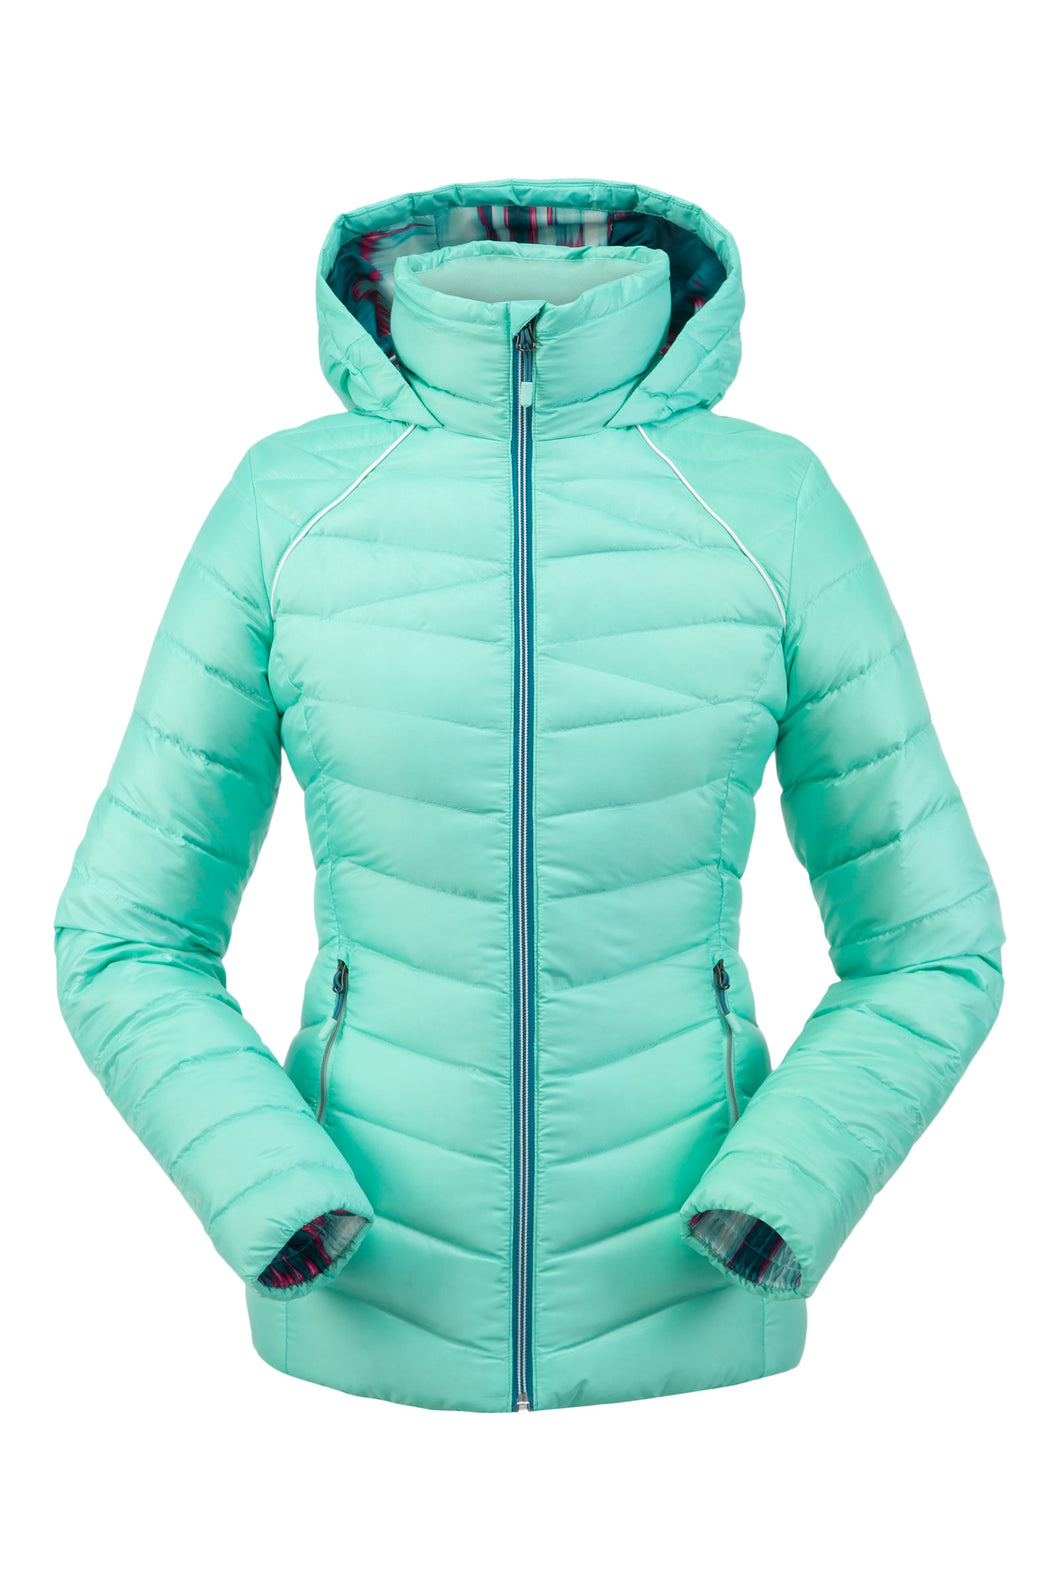 'Spyder' Women's Timeless Hoodie Down Jacket - Vintage